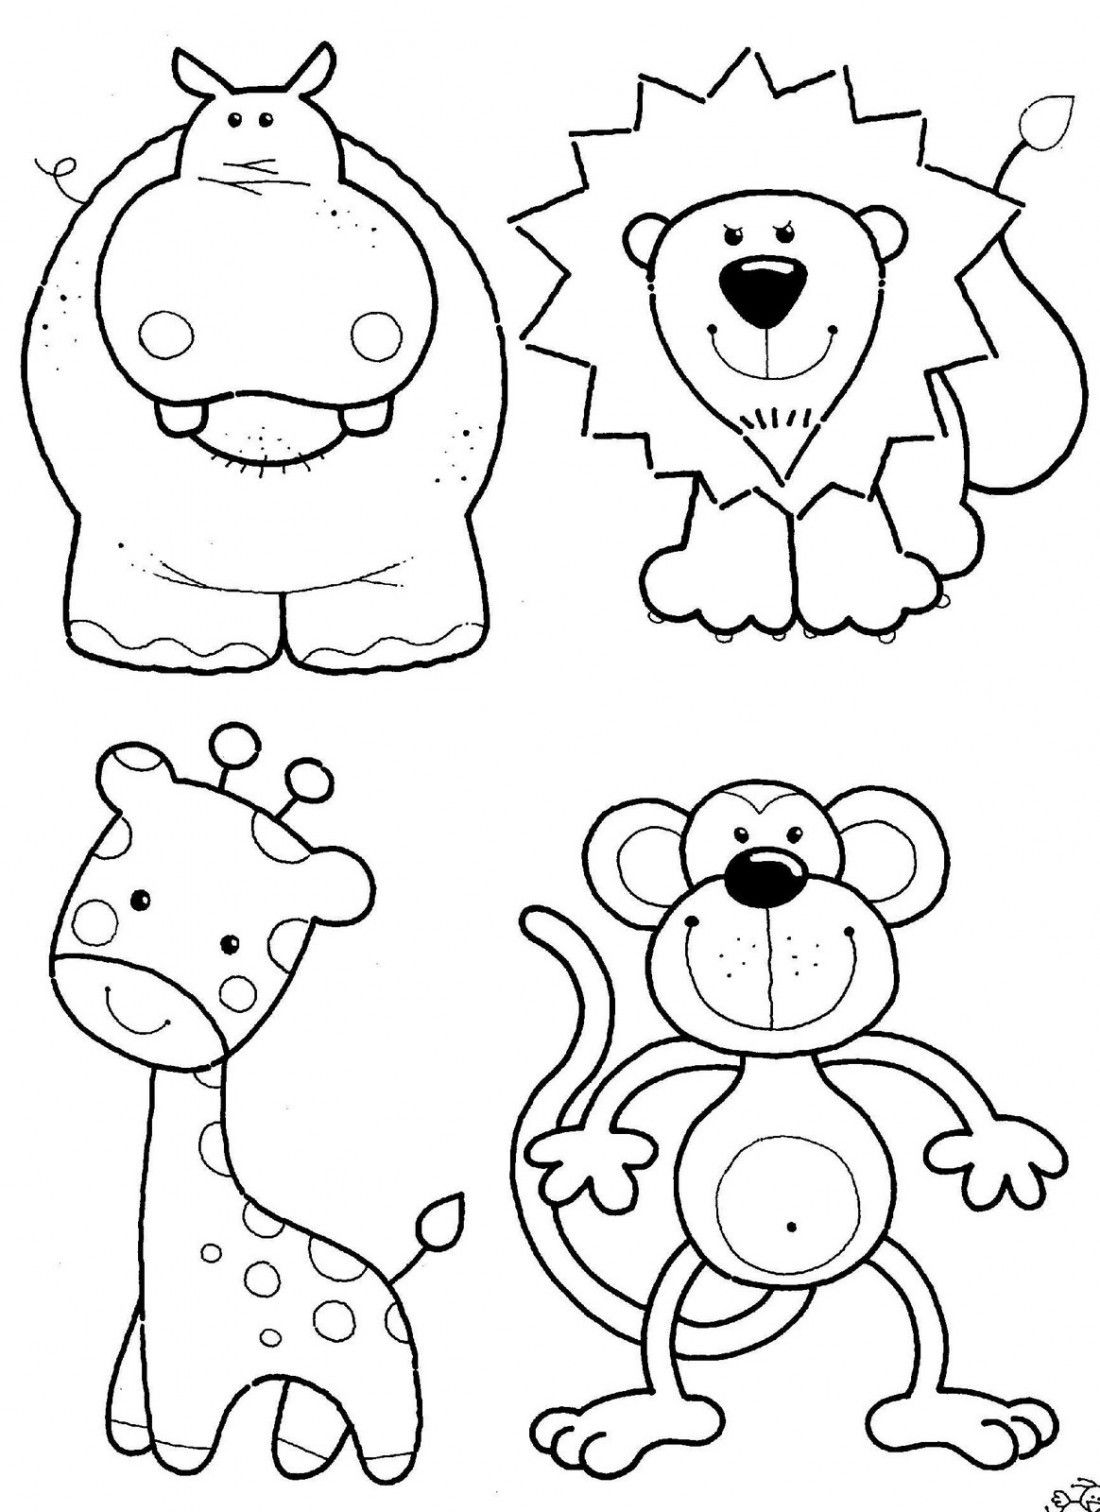 Animal Coloring Pages For Kids Free Coloring Pages Pinterest